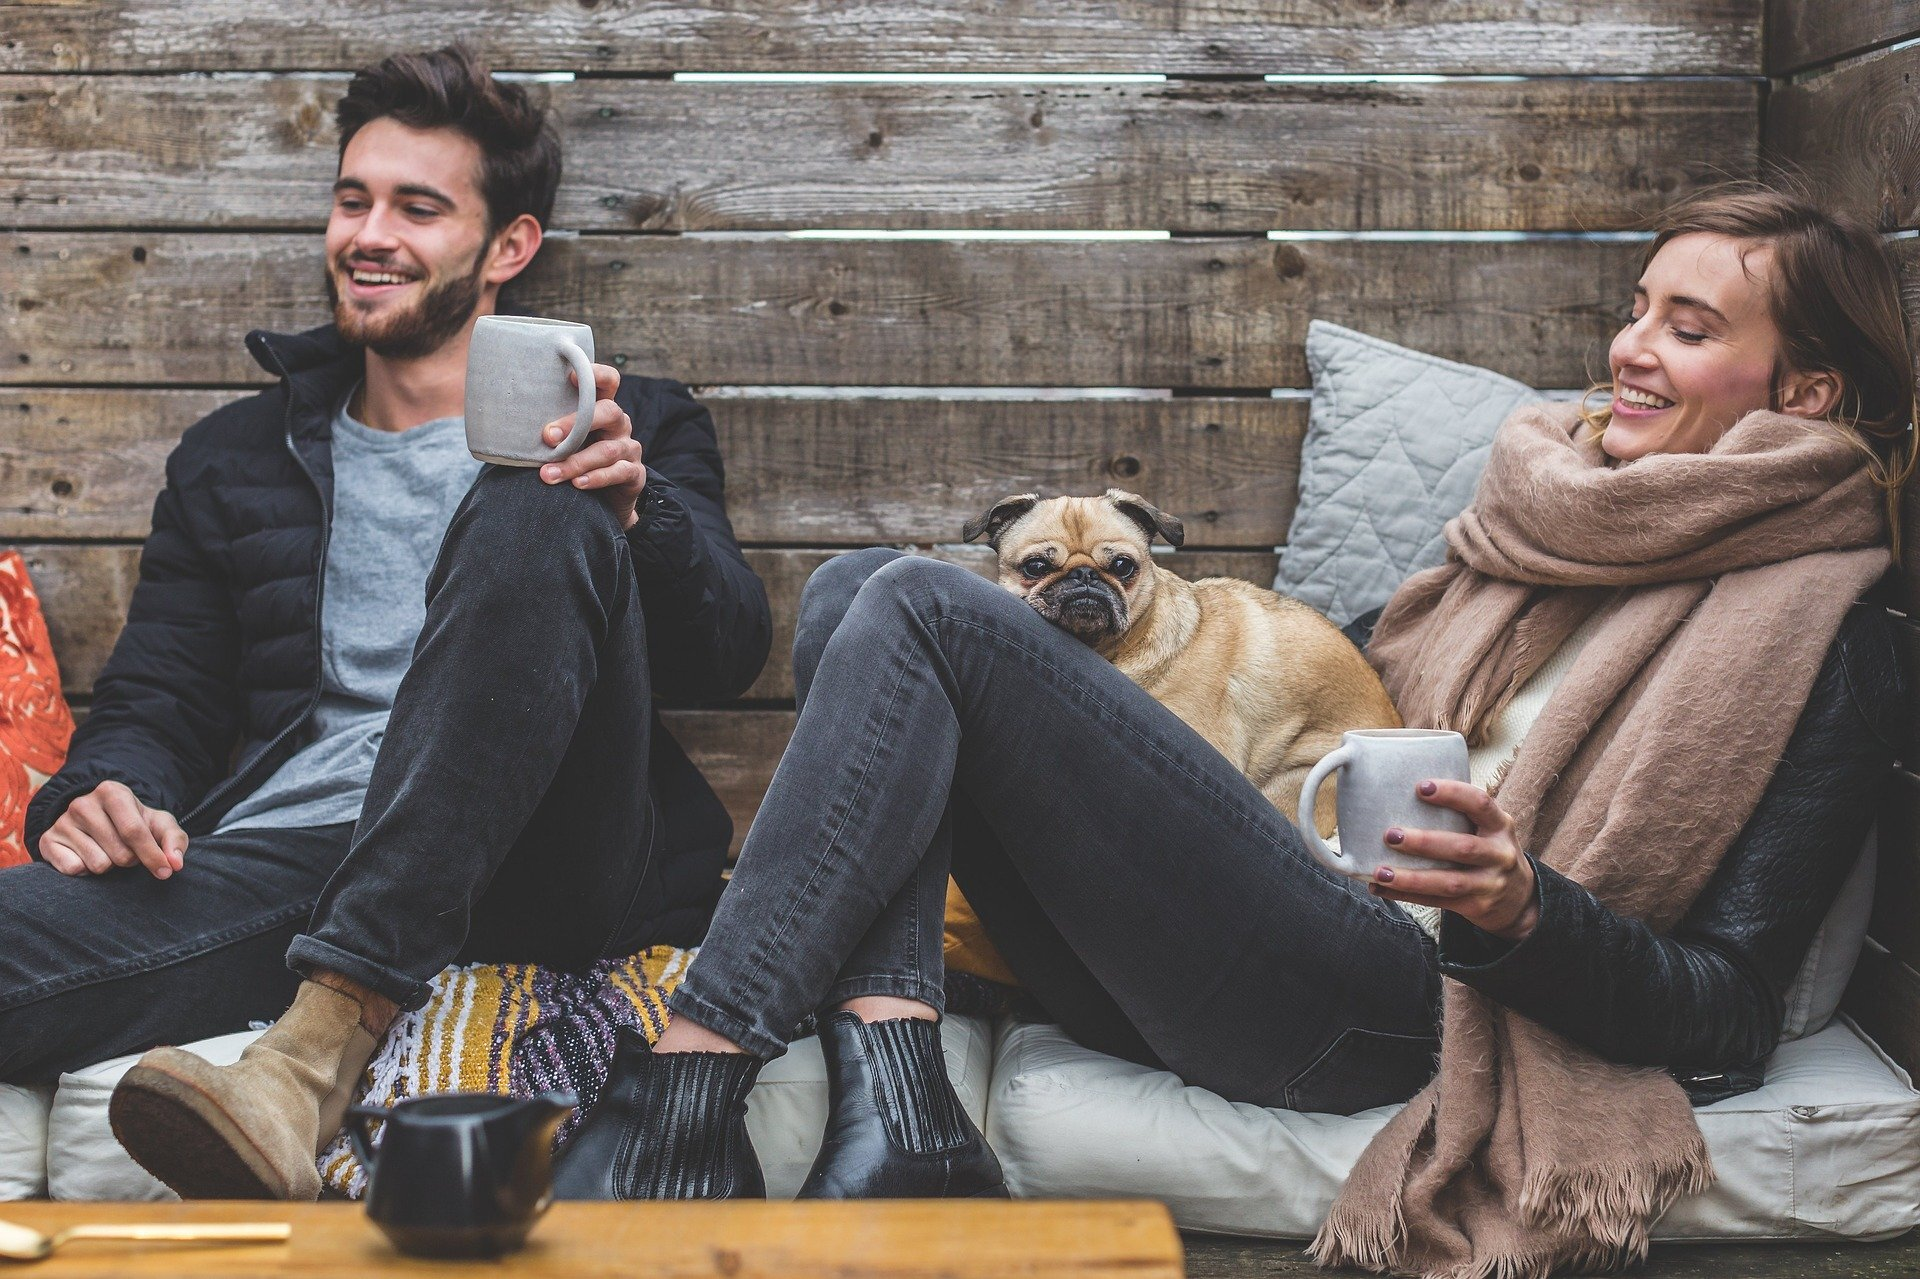 From Watching Reruns to Relationships, There Are Many Ways of Feeling Connected